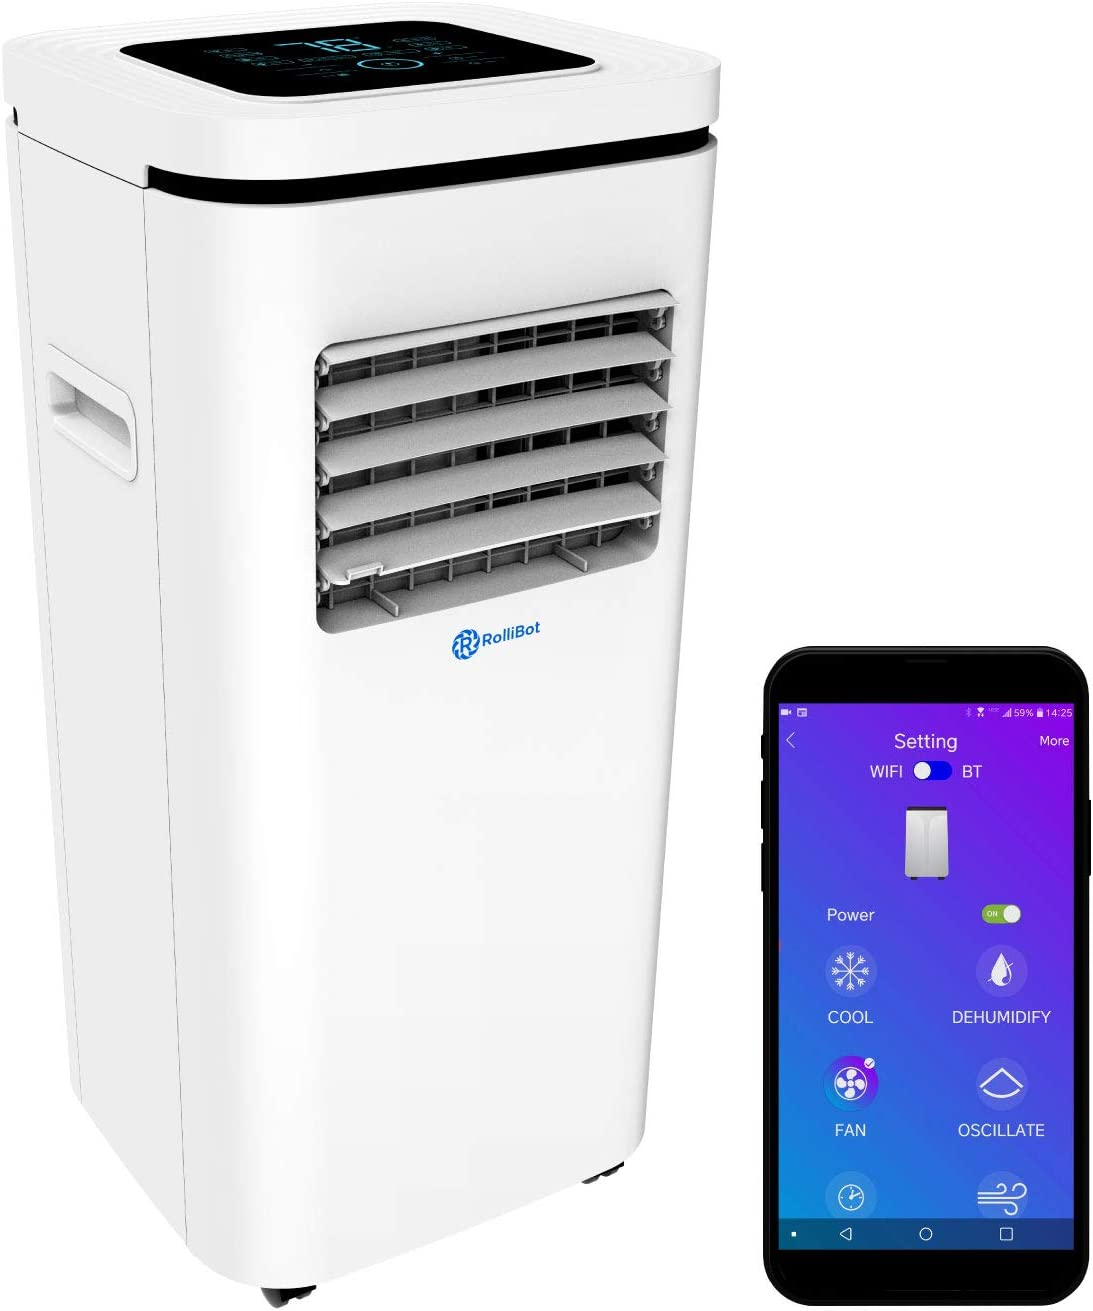 Rollibot ROLLICOOL Portable Air Conditioner w/App & Alexa Voice Control | Wi-Fi Enabled Portable AC & Dehumidifier | Quiet Operation, Easy Installation (10,000 BTU, White)